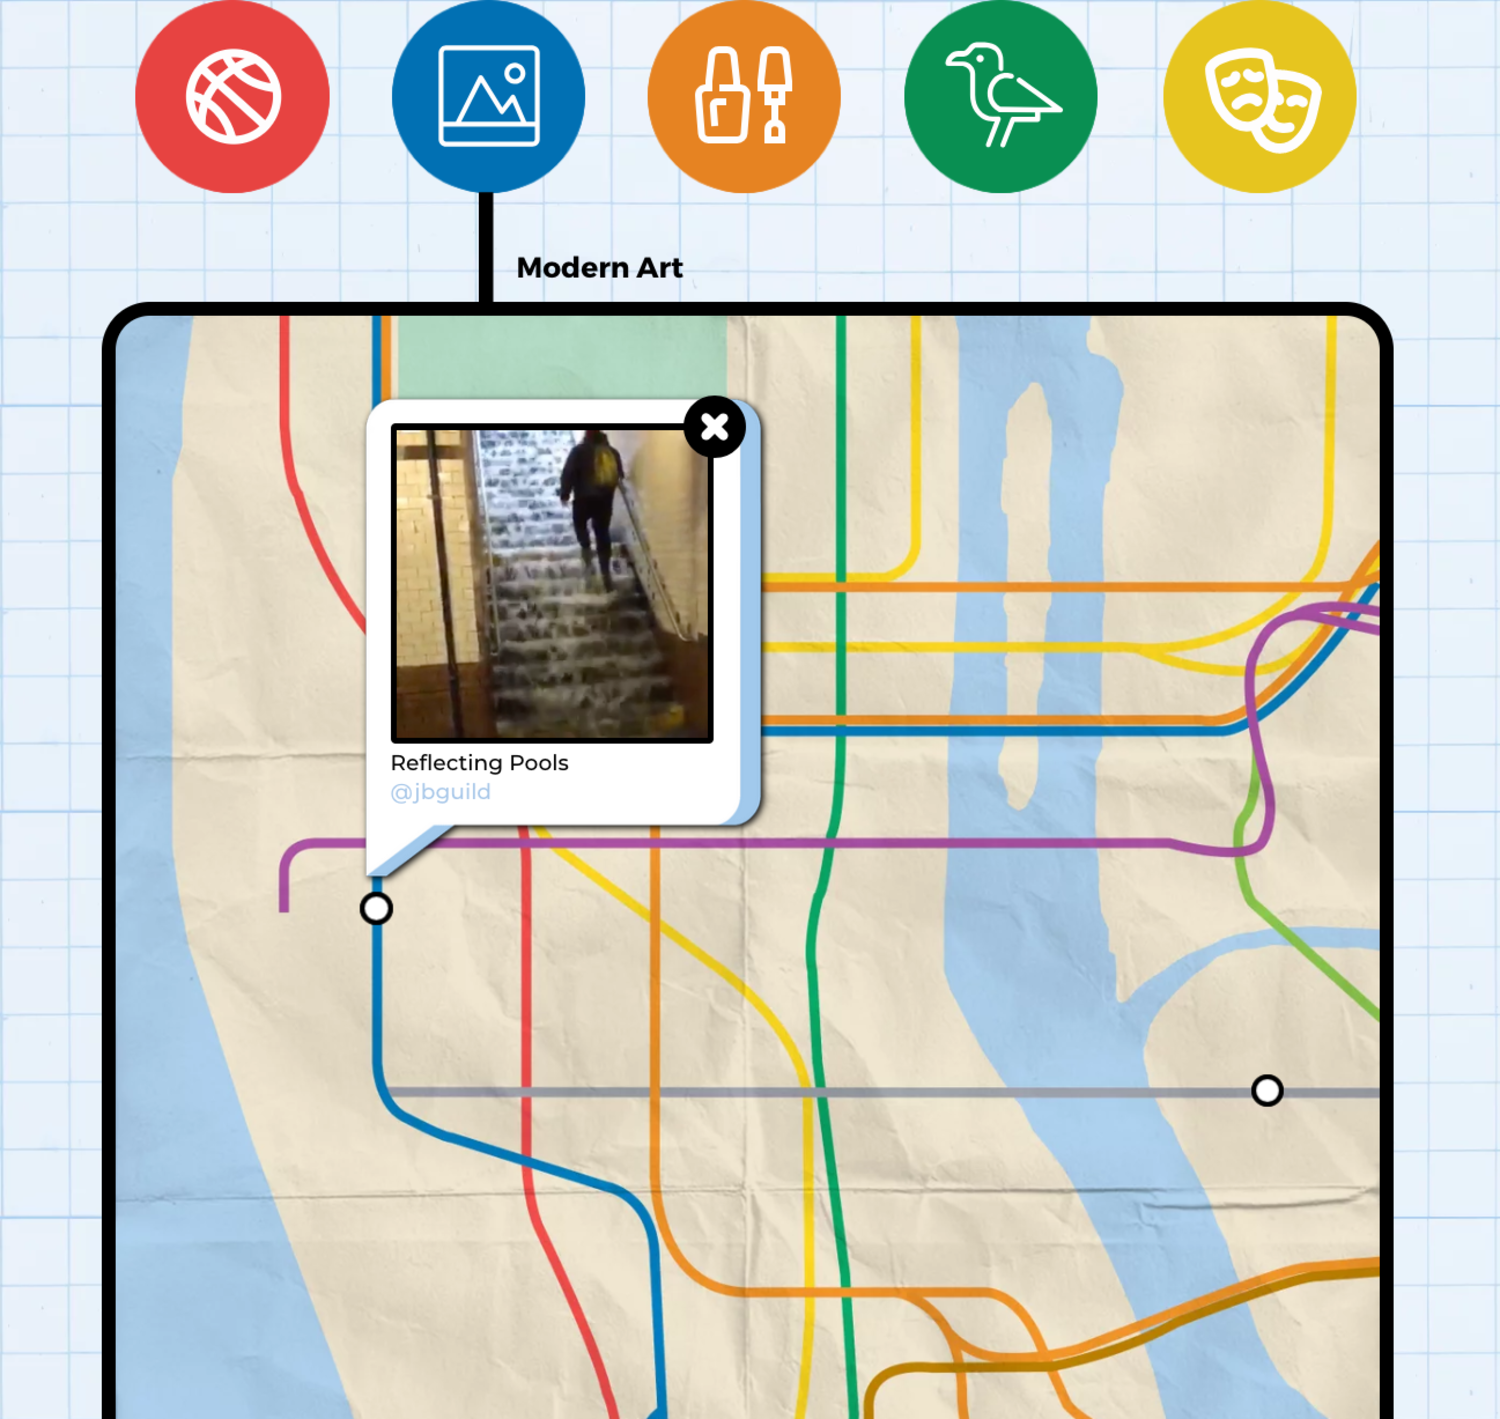 Best New York Subway Map.This Satirical Map Shows All Of The Best New York City Subway